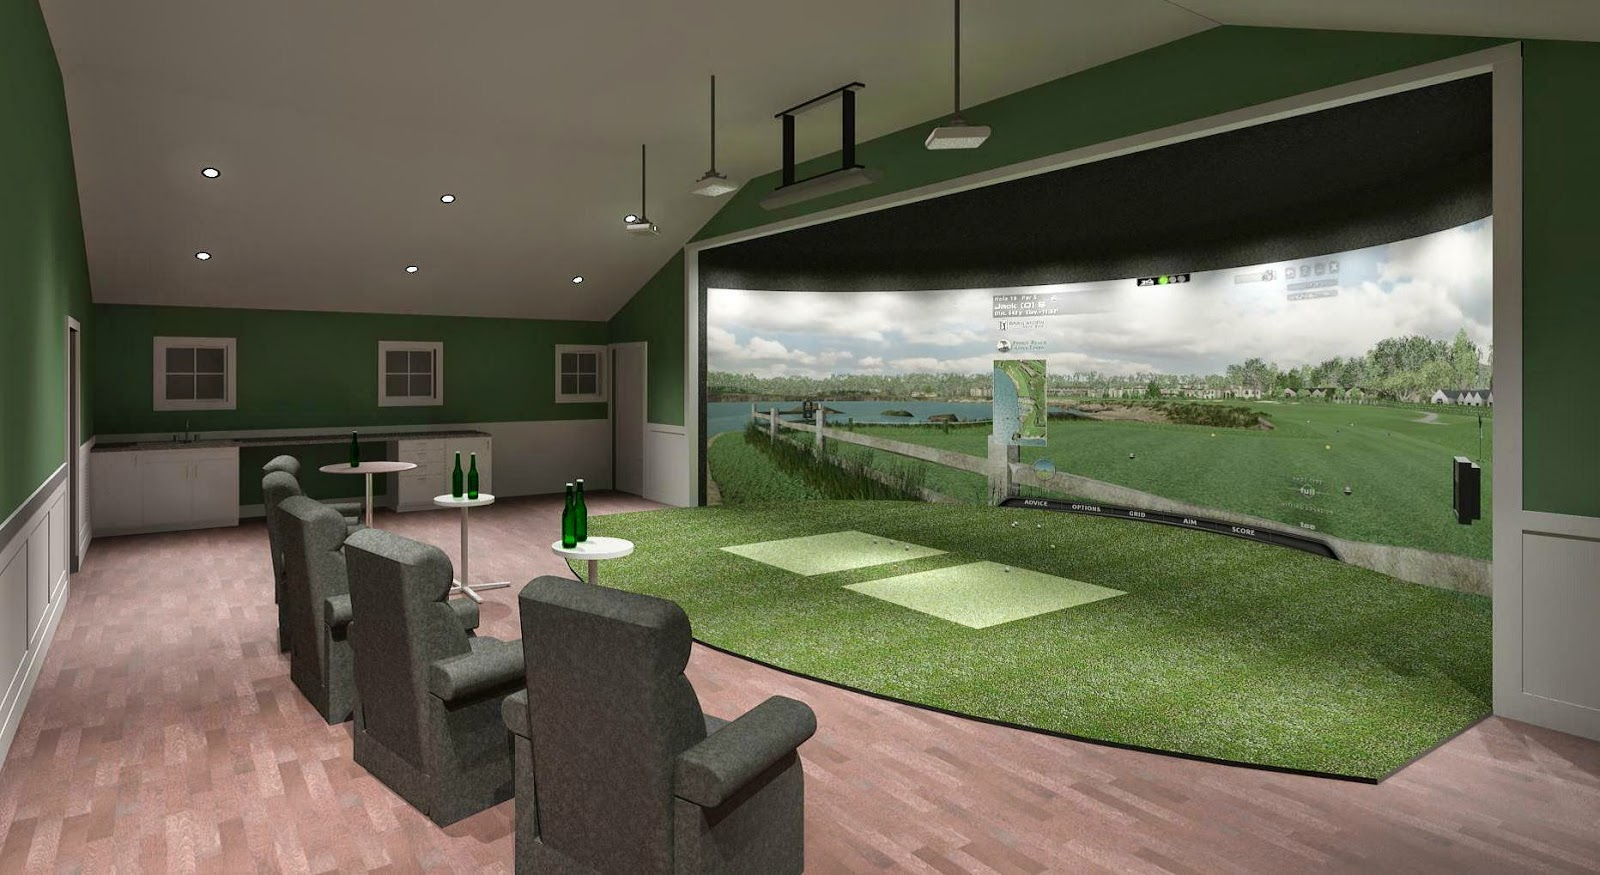 American Golfer Manchester Cc To Unveil State Of The Art